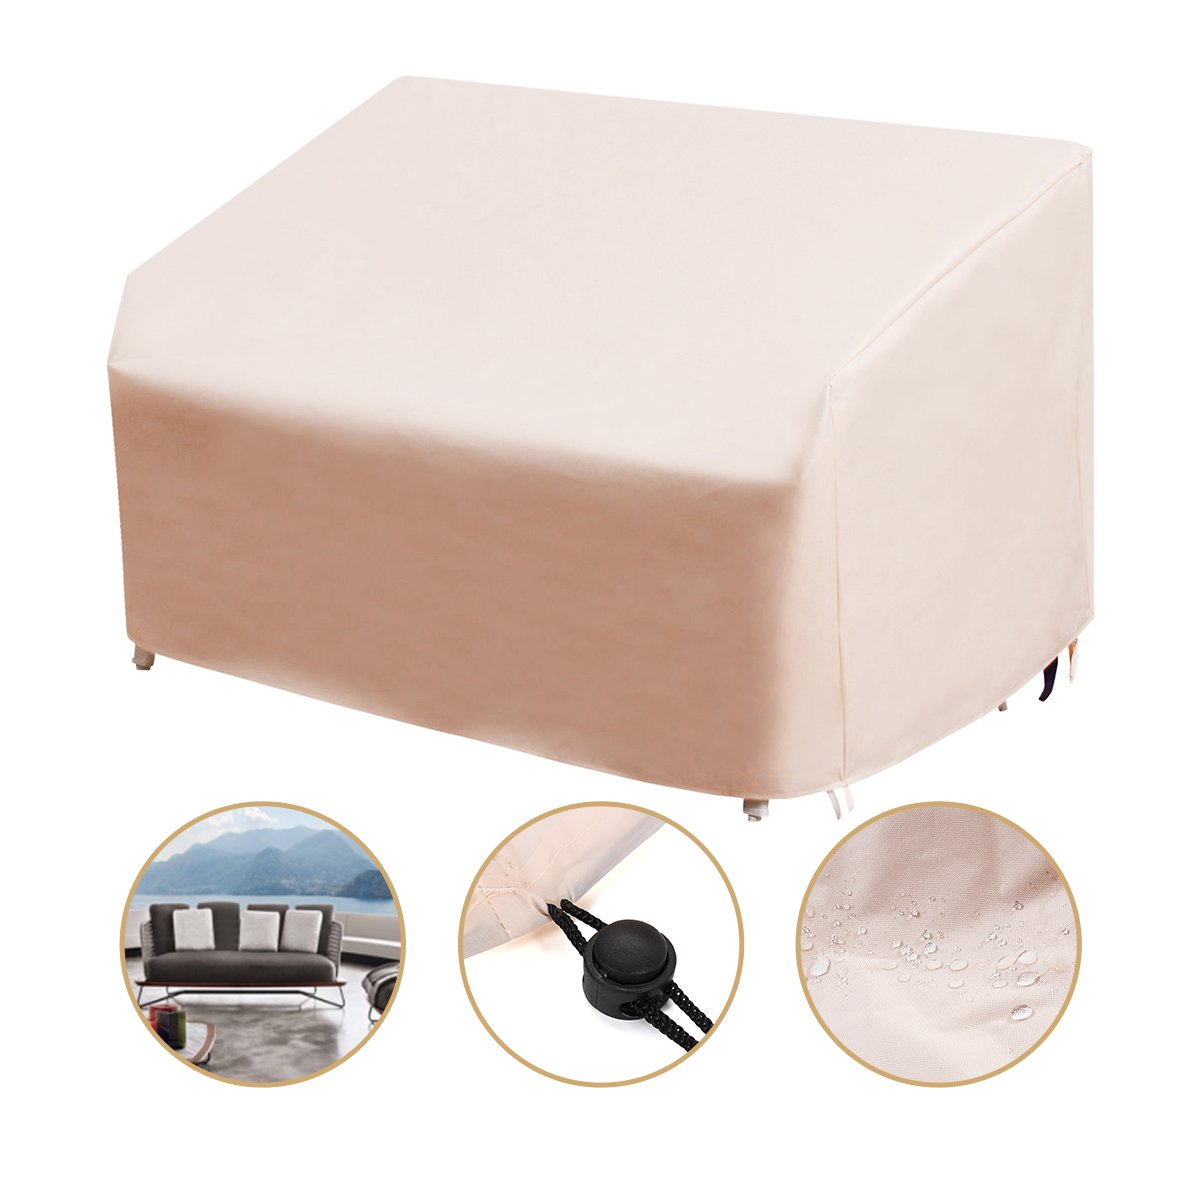 dDanke Beige 3-Seater Deep Lounge Sofa Cover Waterproof Outdoor Bench Seat Cover 215*109*101cm